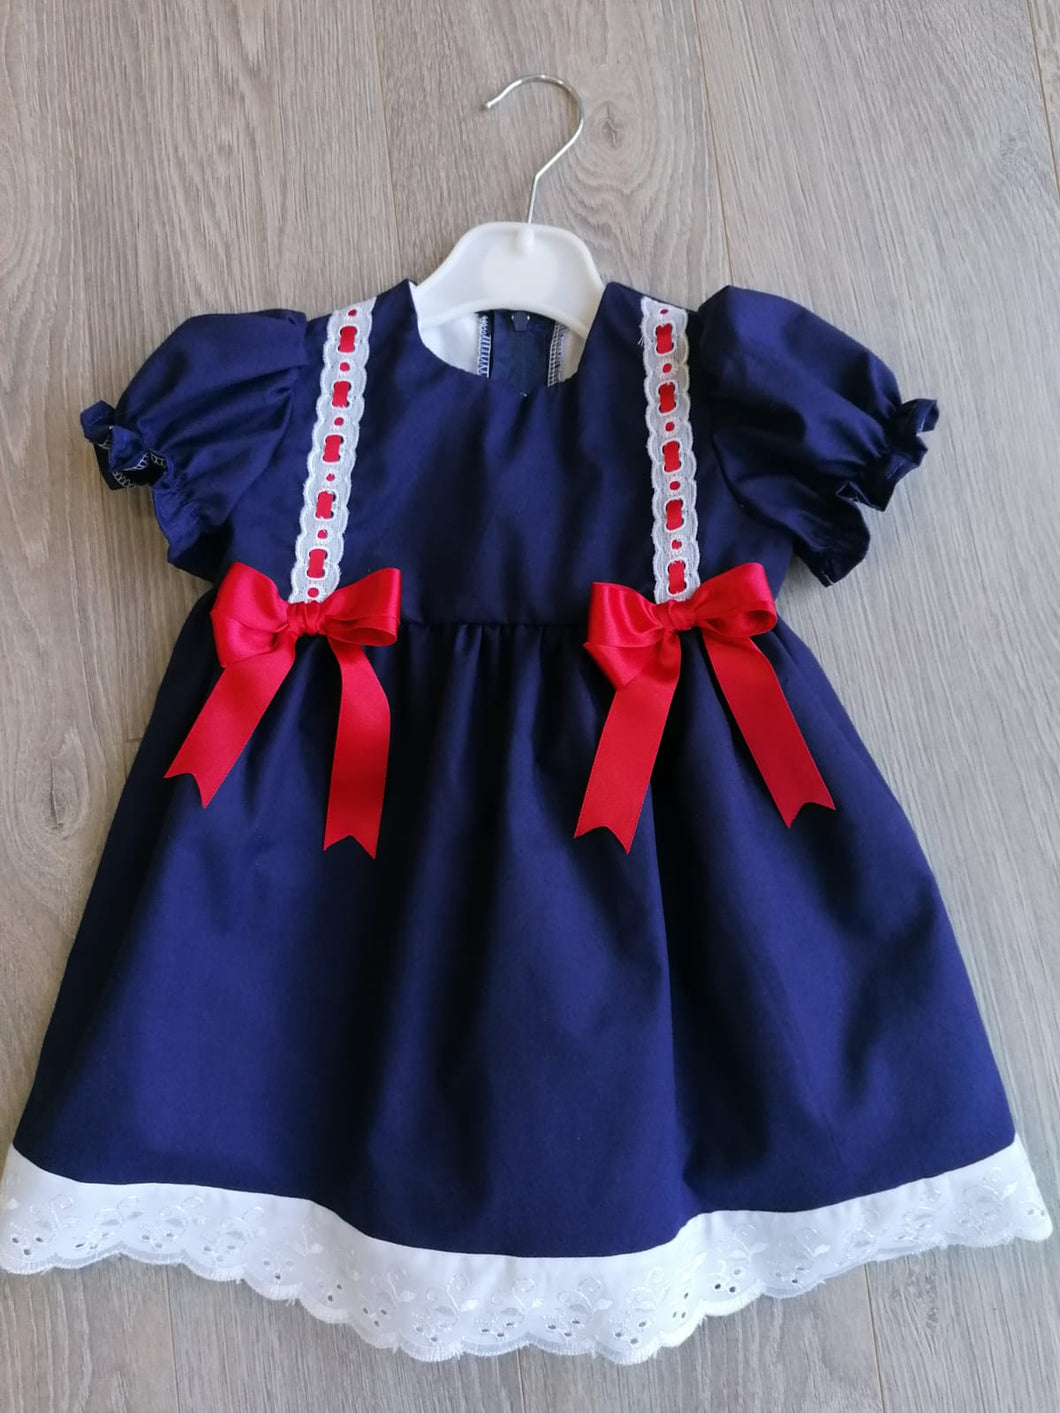 The Dulcie Dress